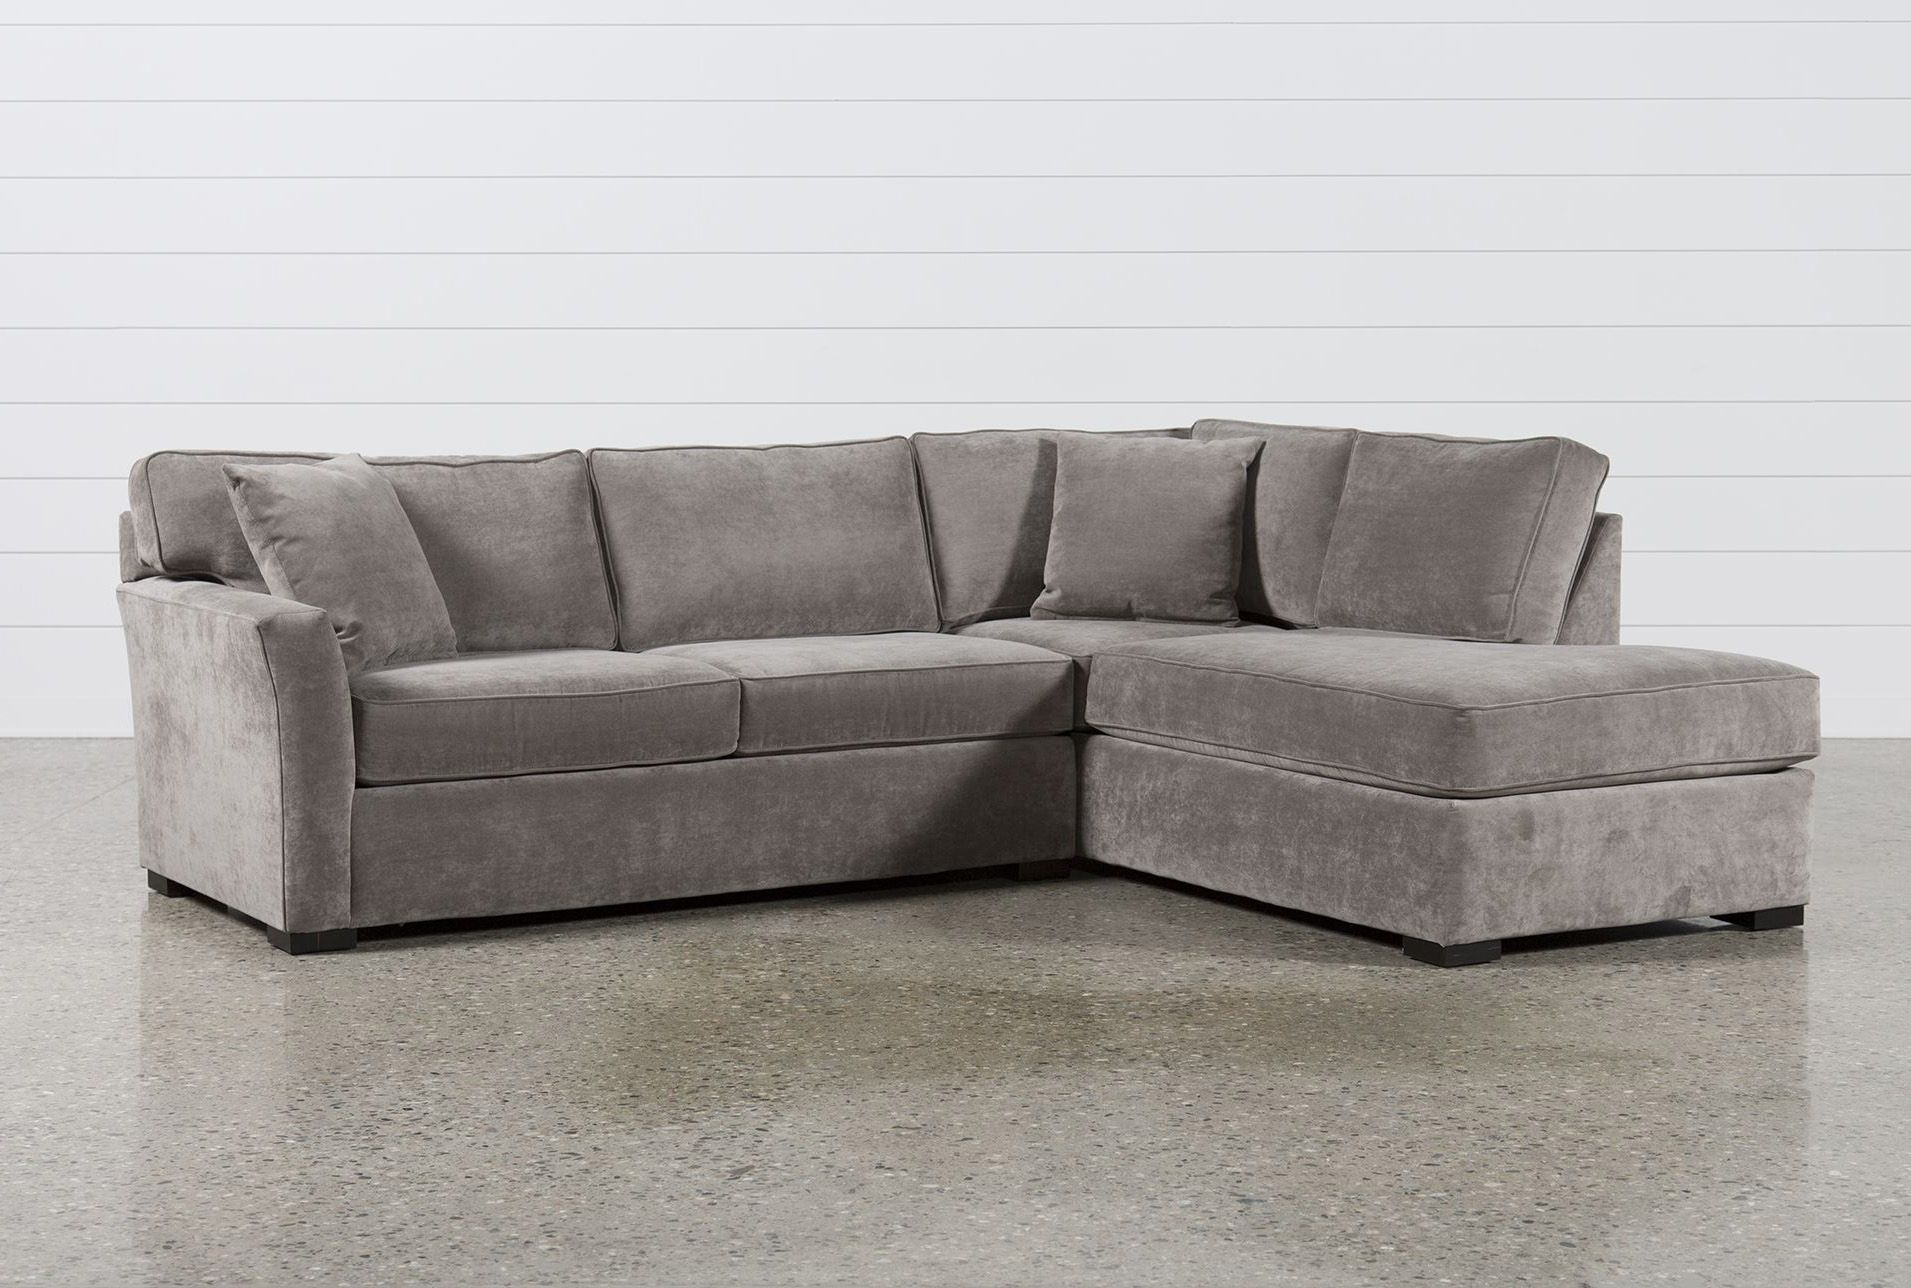 Aspen 2 Piece Sleeper Sectional W/raf Chaise | Sleeper Sectional With Mcdade Graphite 2 Piece Sectionals With Raf Chaise (Image 3 of 25)